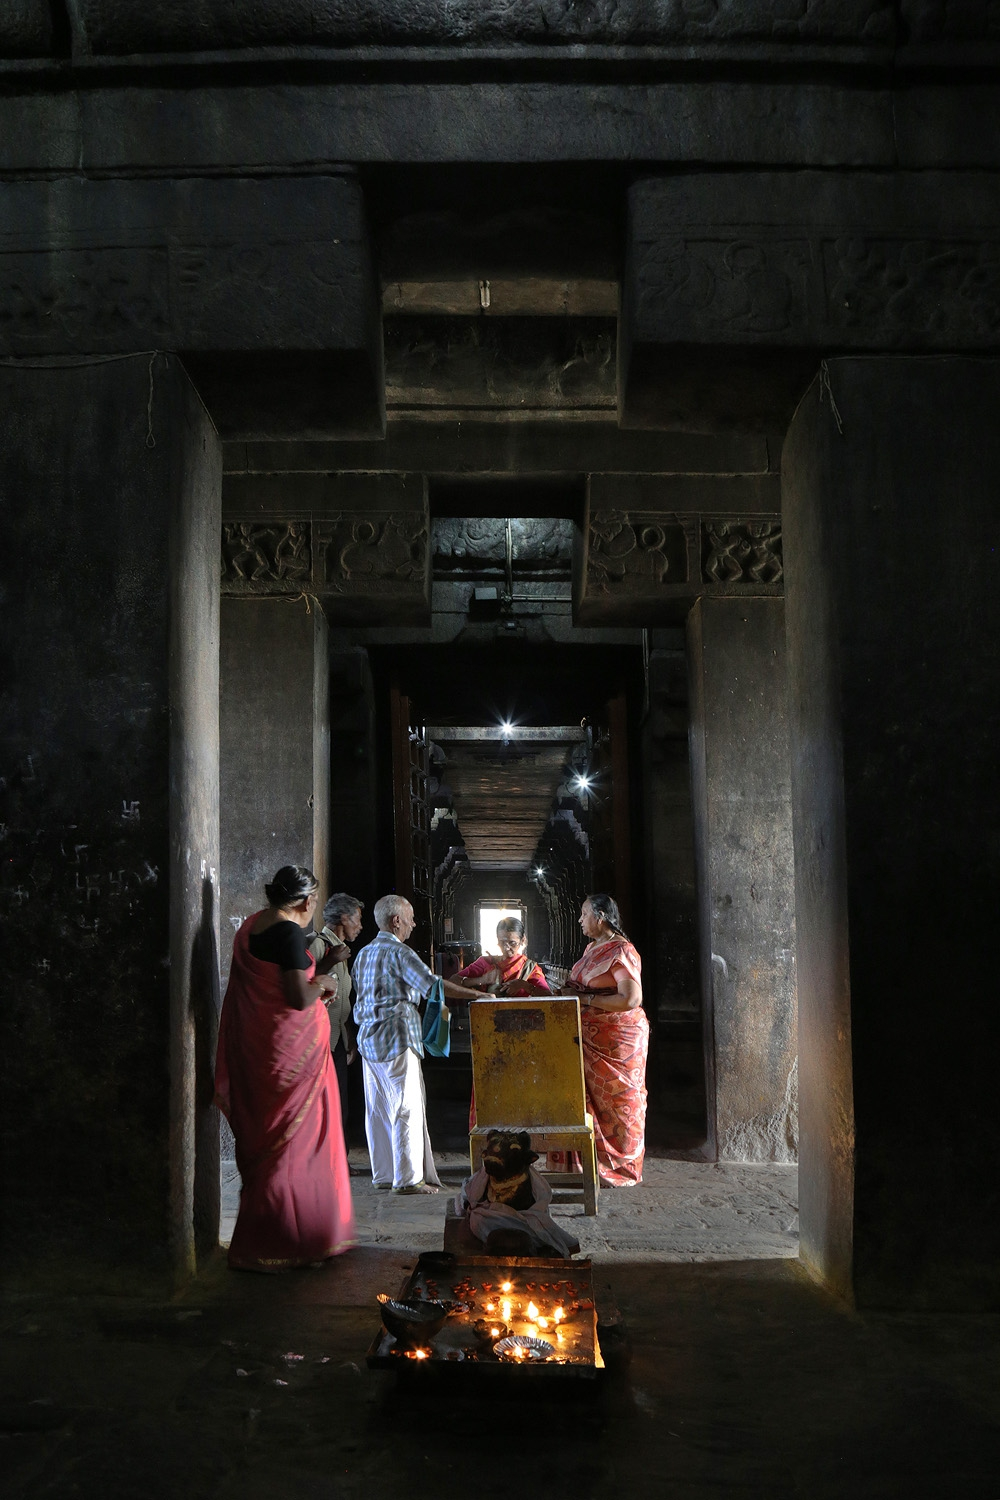 18-templedonation ?? Temple, 